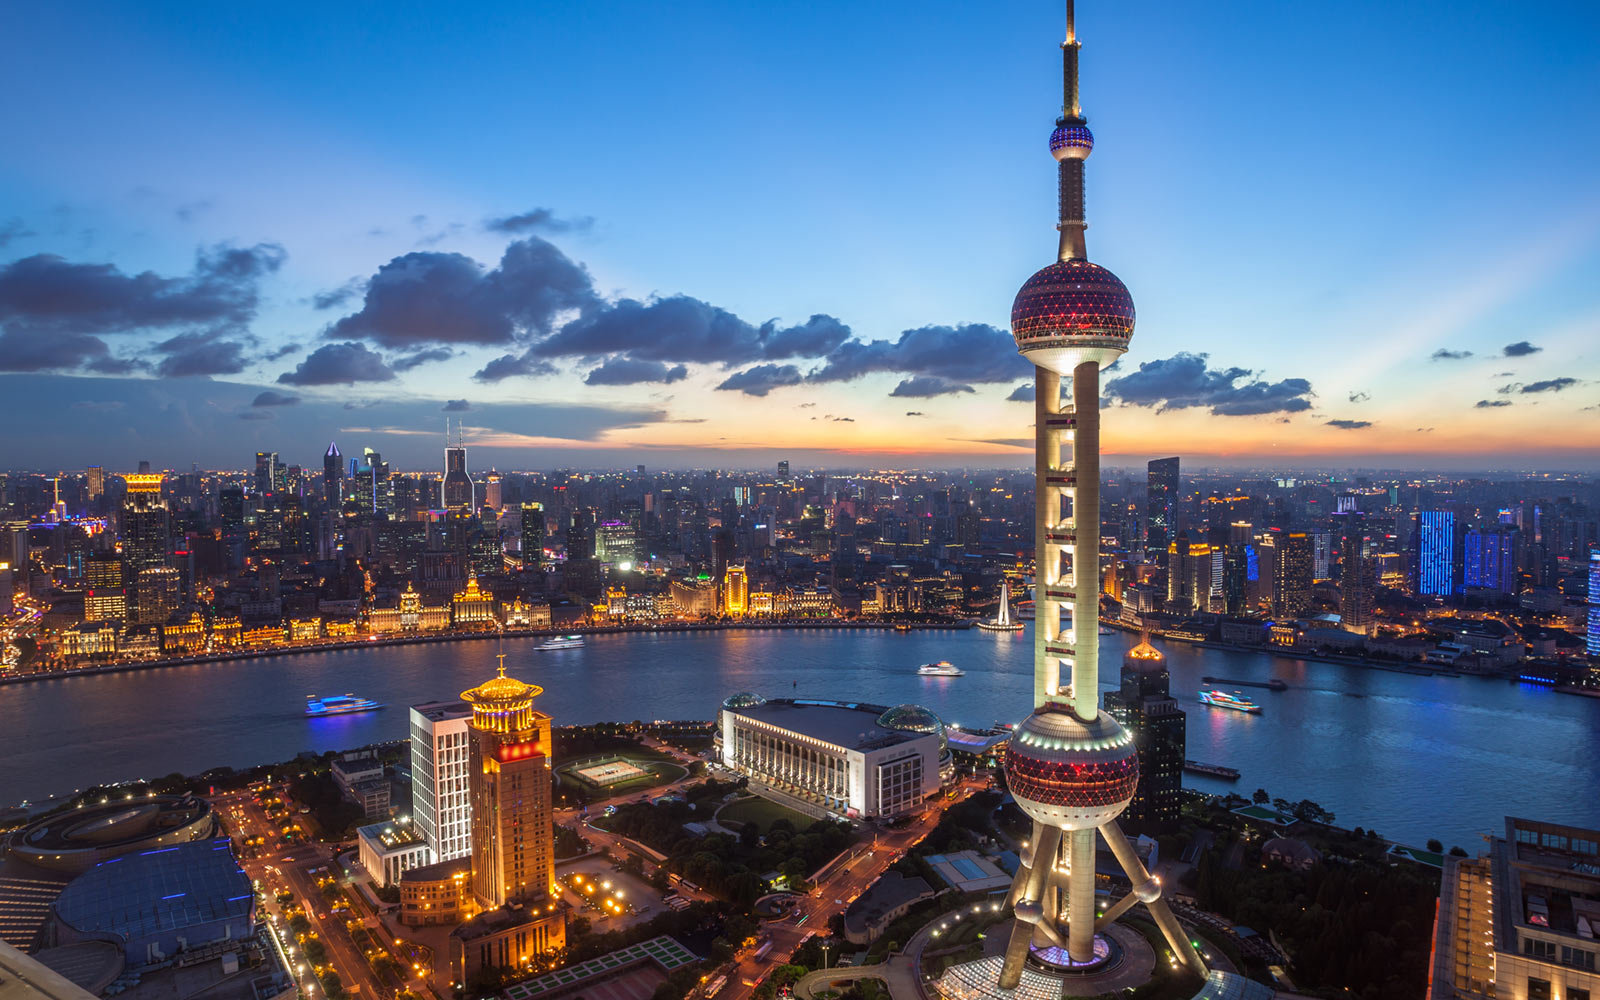 The Bund and Oriental Pearl Tower, Shanghai, China